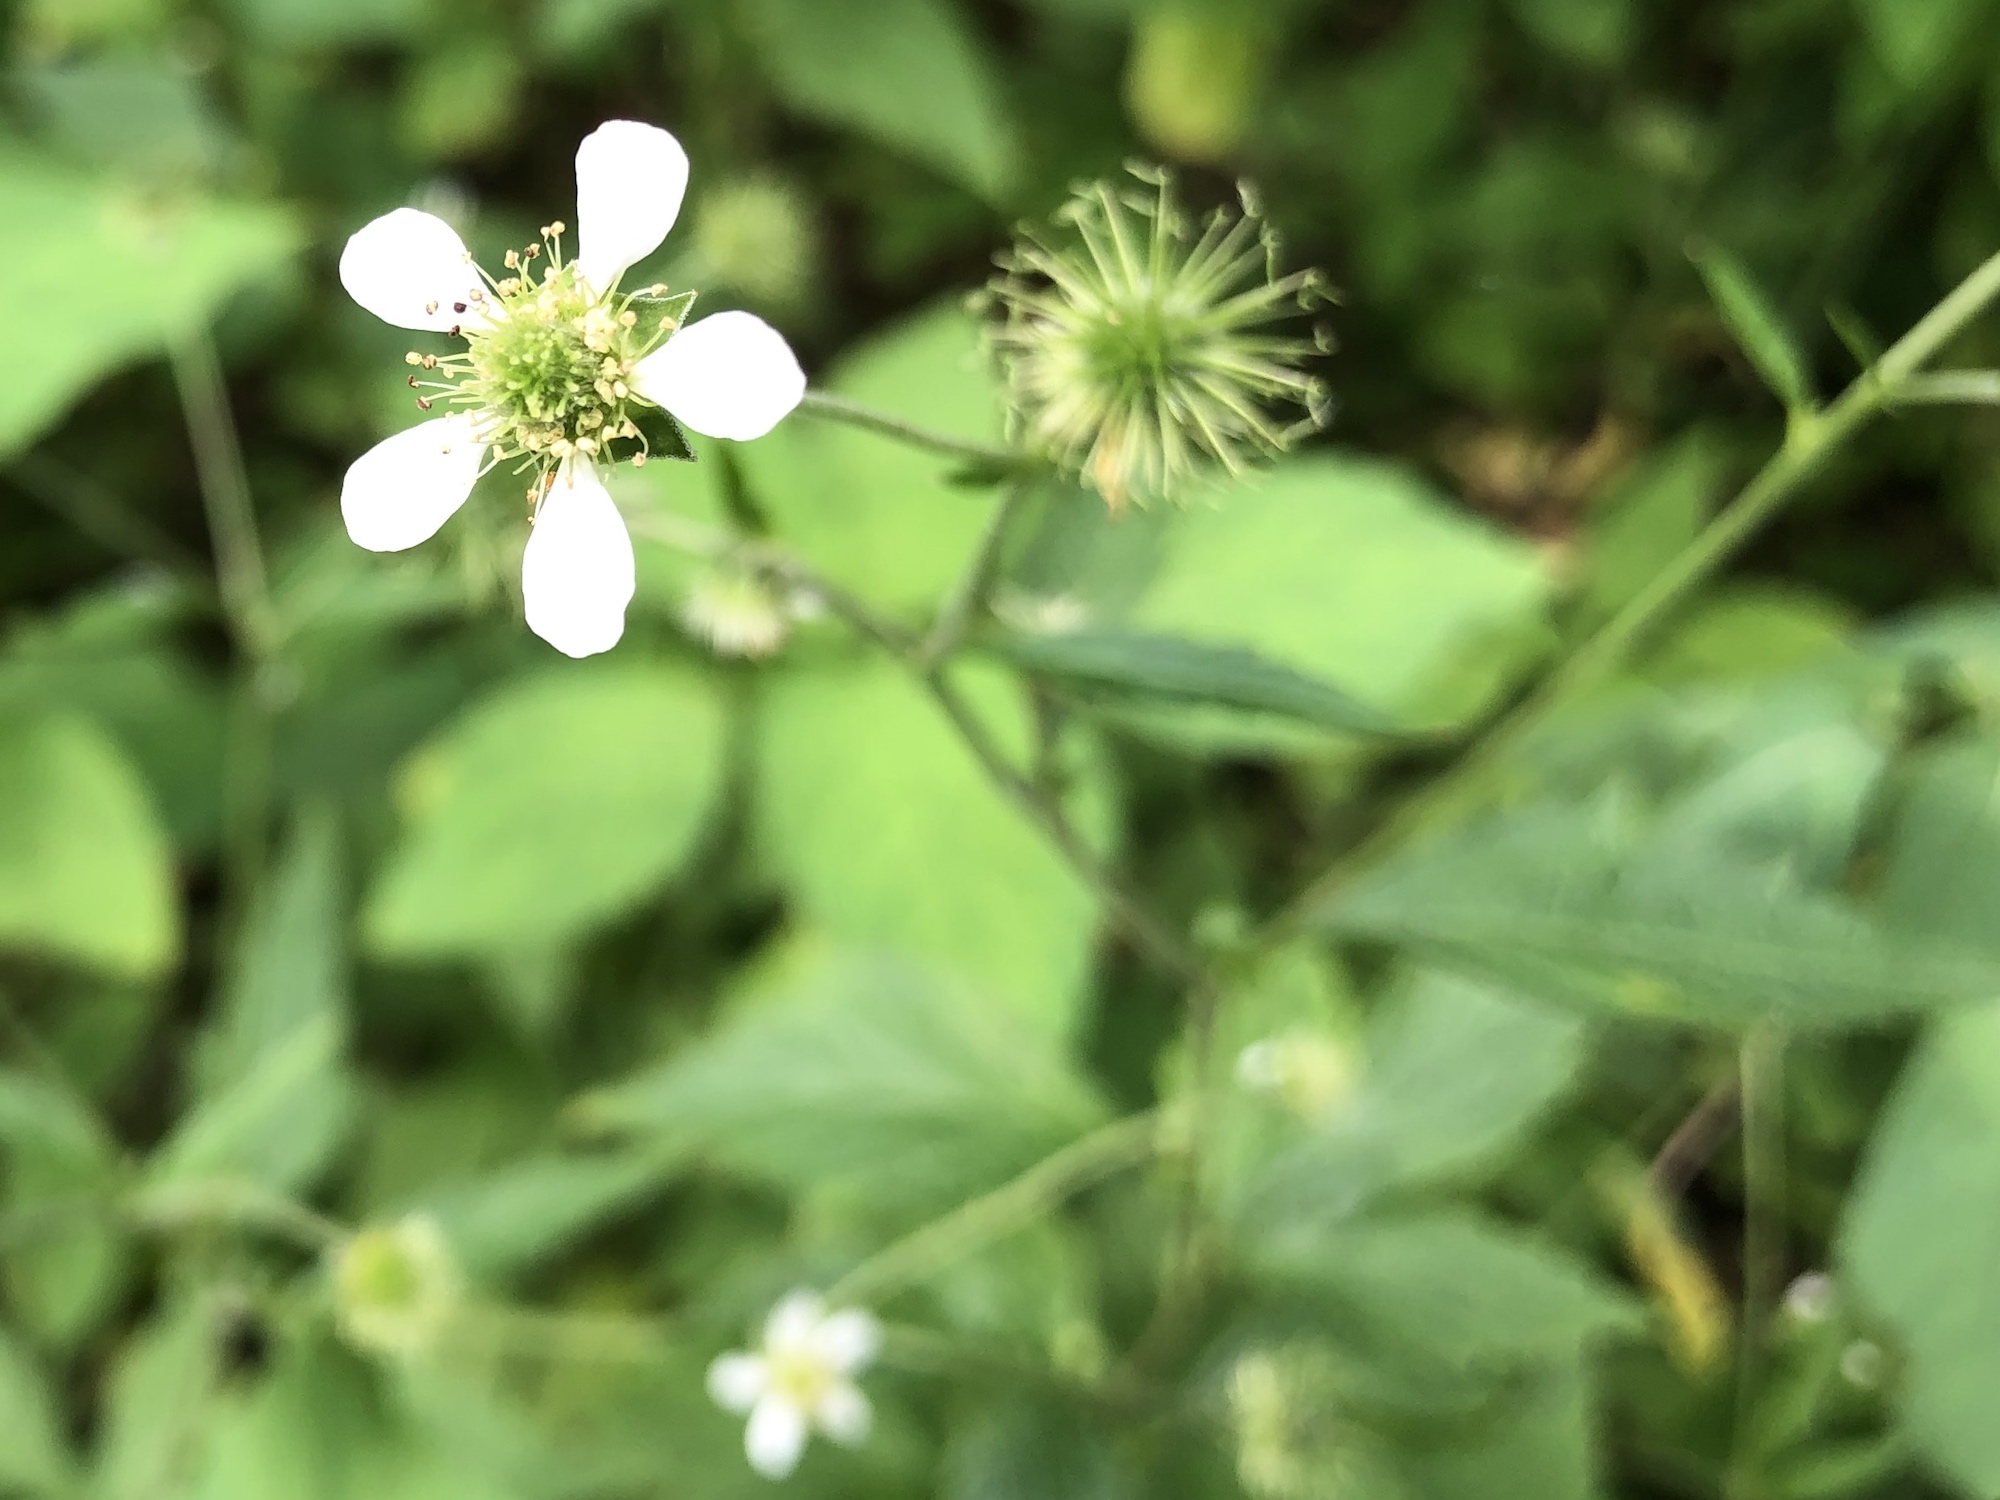 White Avens in Oak Savanna in Madison, Wisconsin on July 5, 2019.